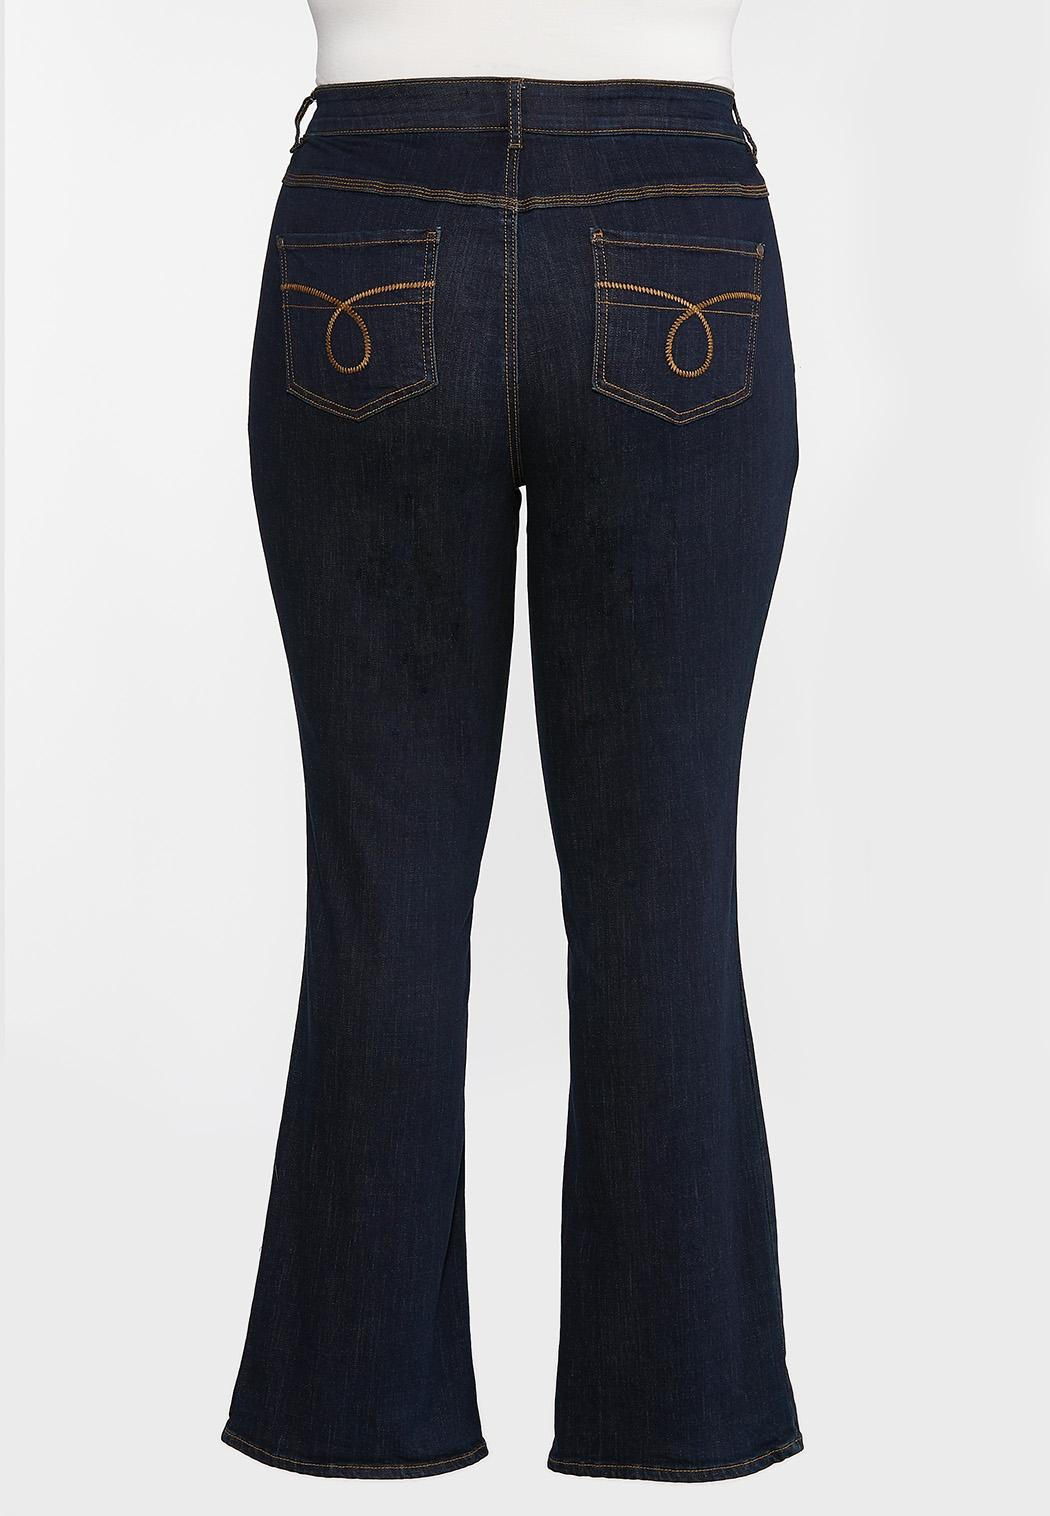 Plus Size High-Rise Bootcut Jeans (Item #44346707)